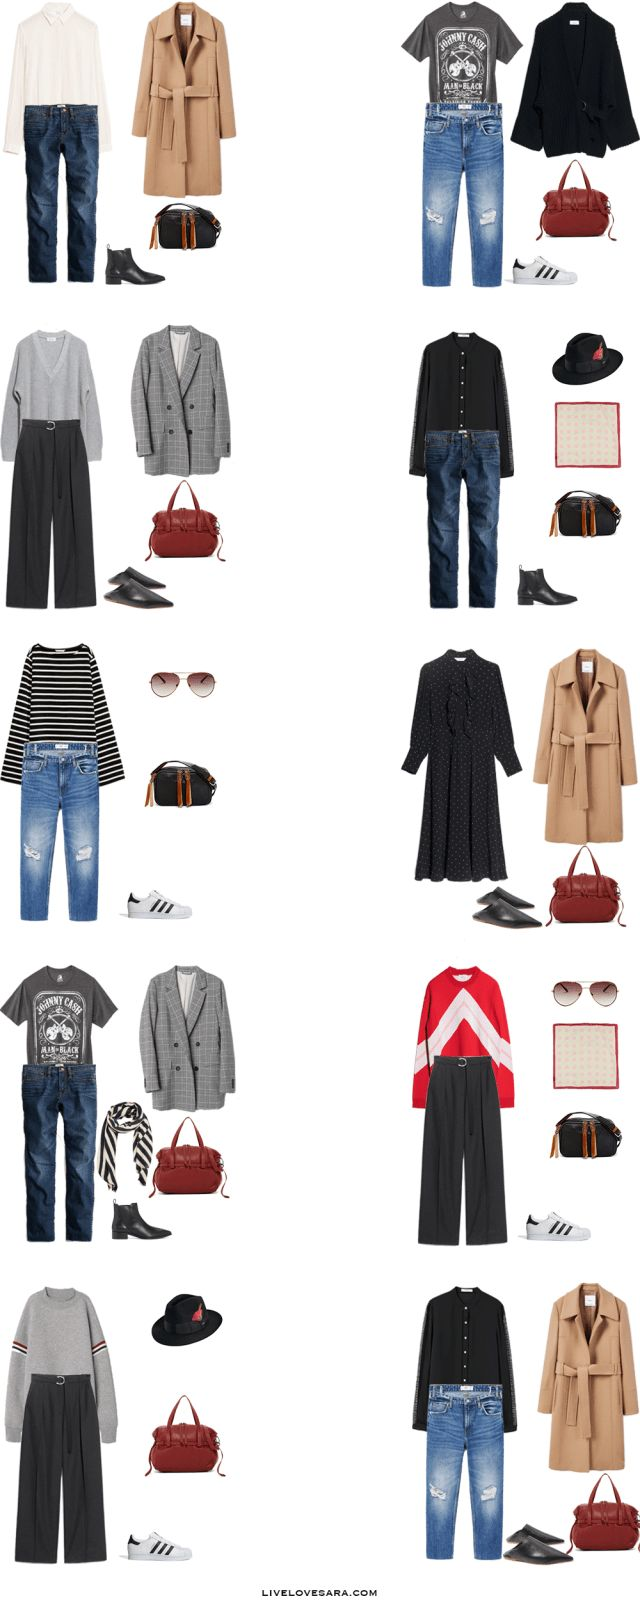 What to Pack for Munich, Florence, and Serbia Packing Light List Outfit Options 11-20 | What to What to Pack for Munich | What to What to Pack for Florence | What to What to Pack for Serbia | Packing Light | Packing List | Travel Light | Travel Wardrobe | Travel Capsule | Capsule |